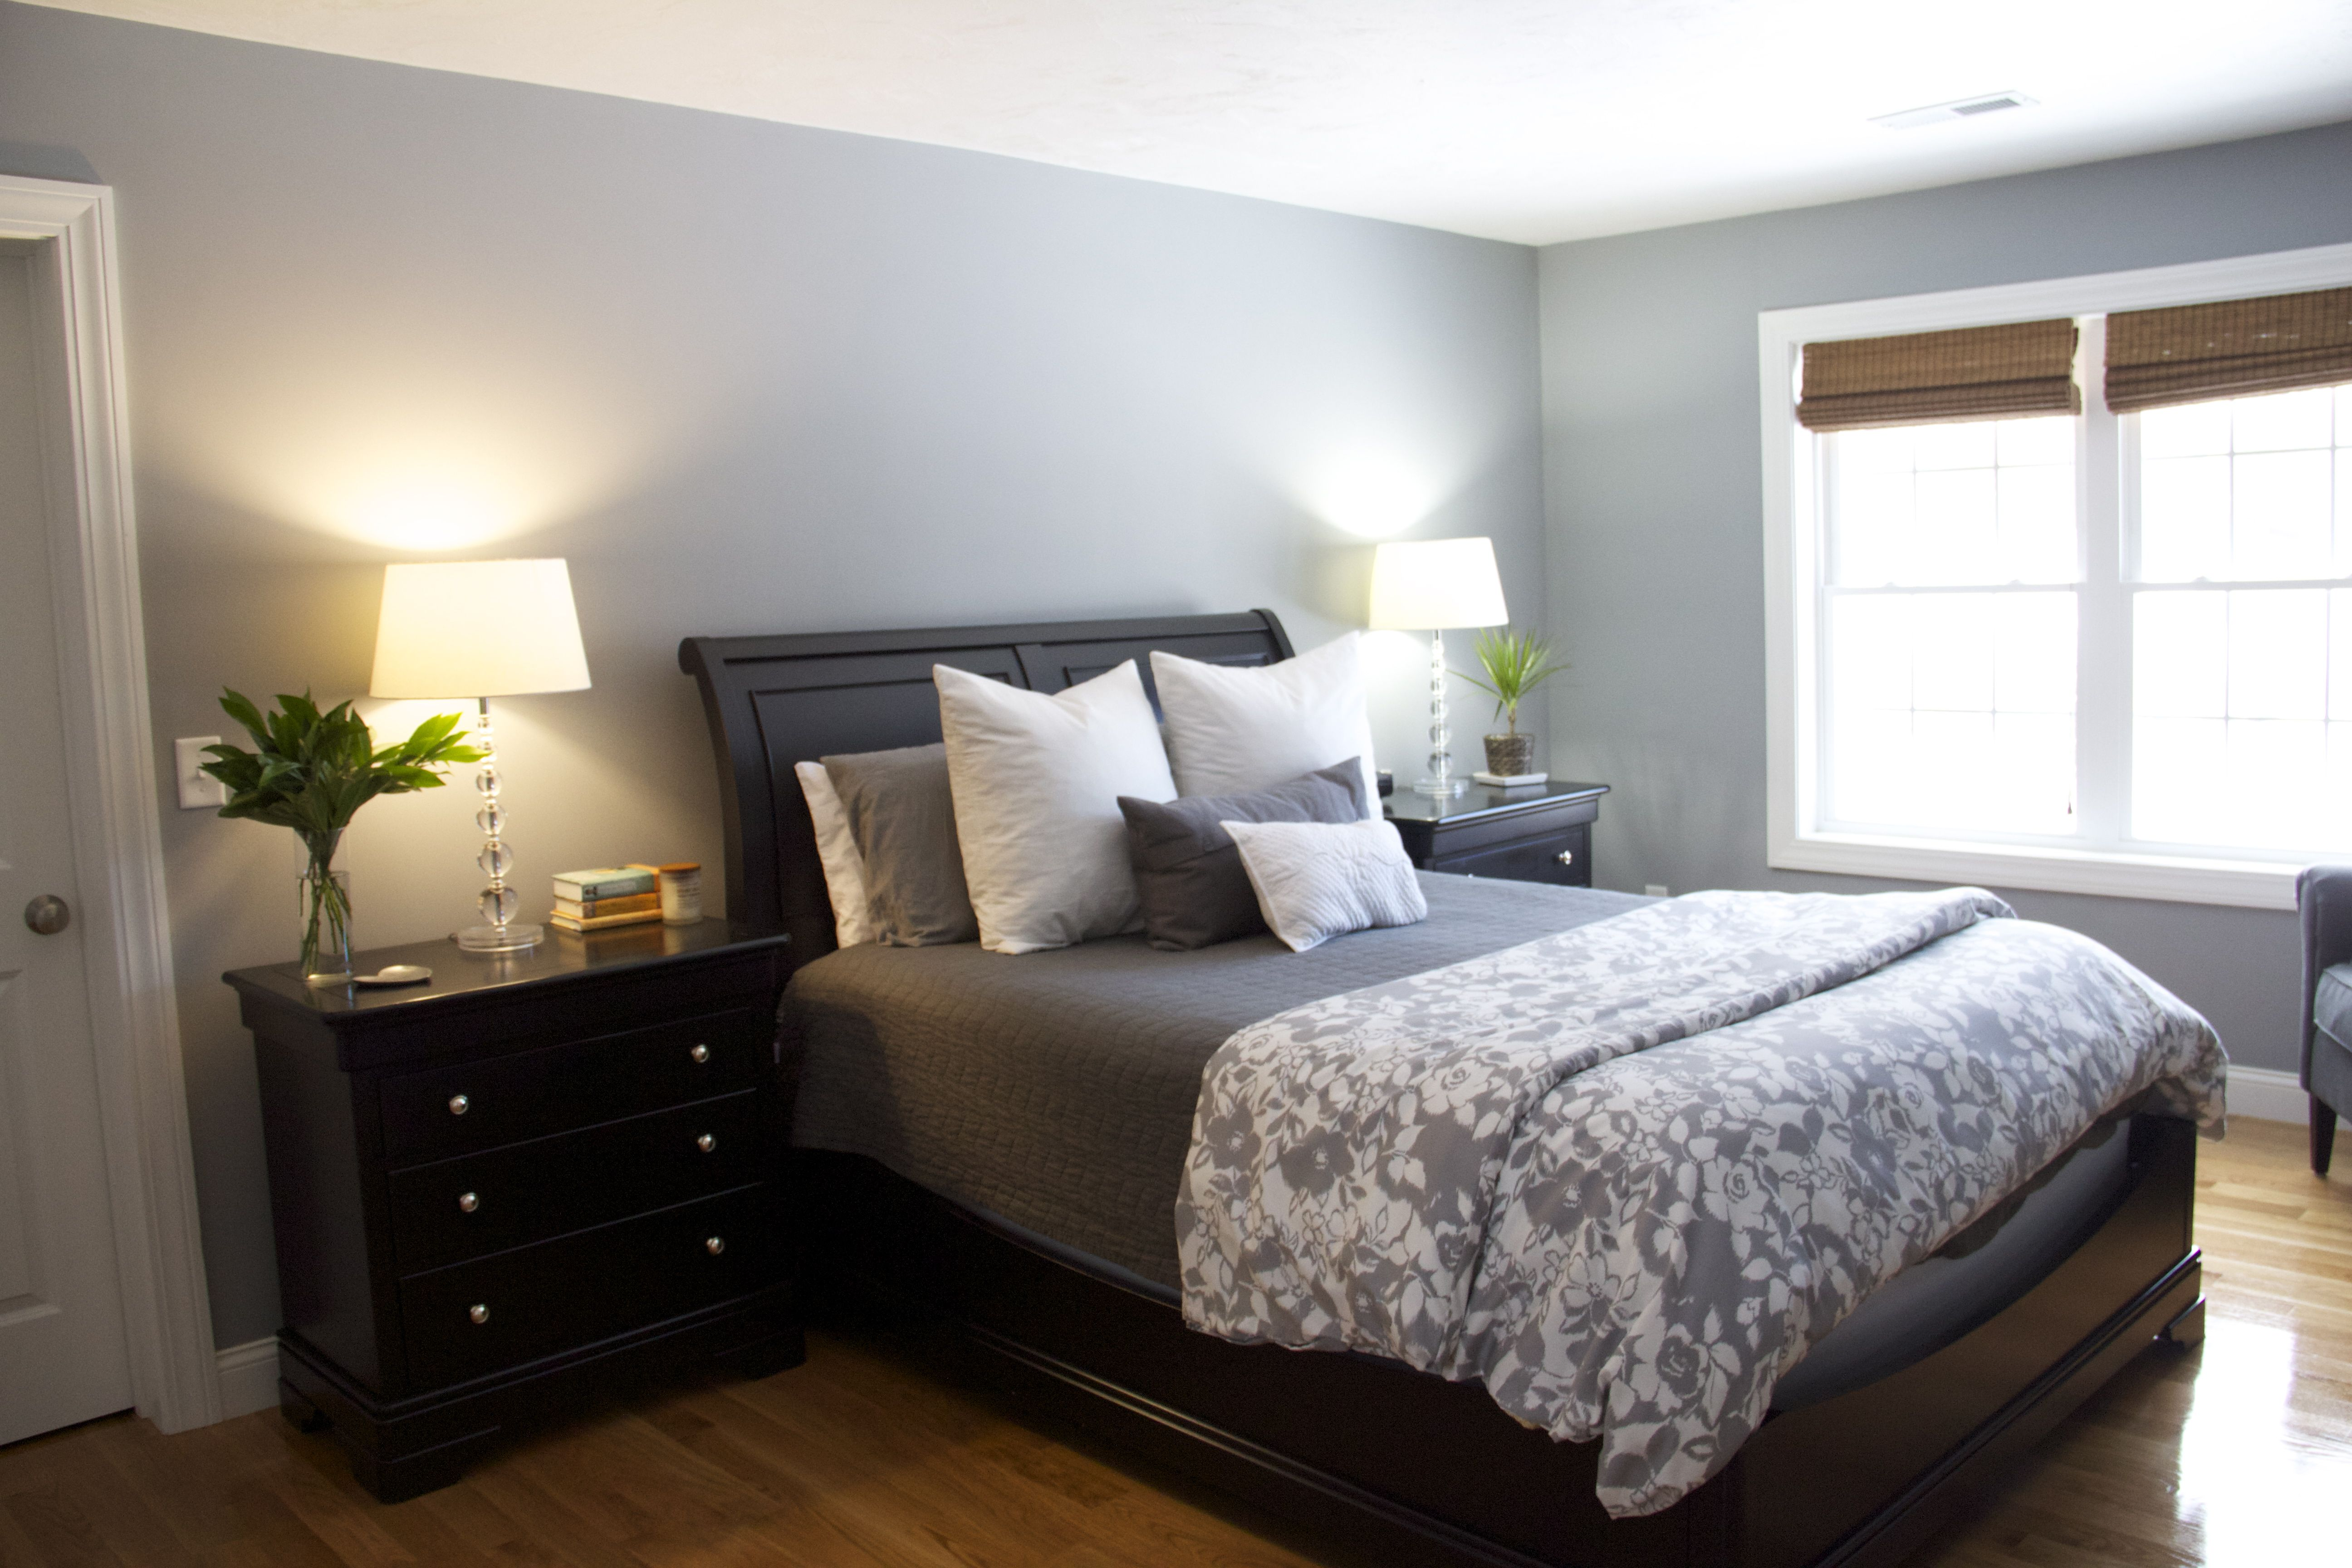 Best Master Bedroom Ideas On A Budget Pinterest How I Like This Month